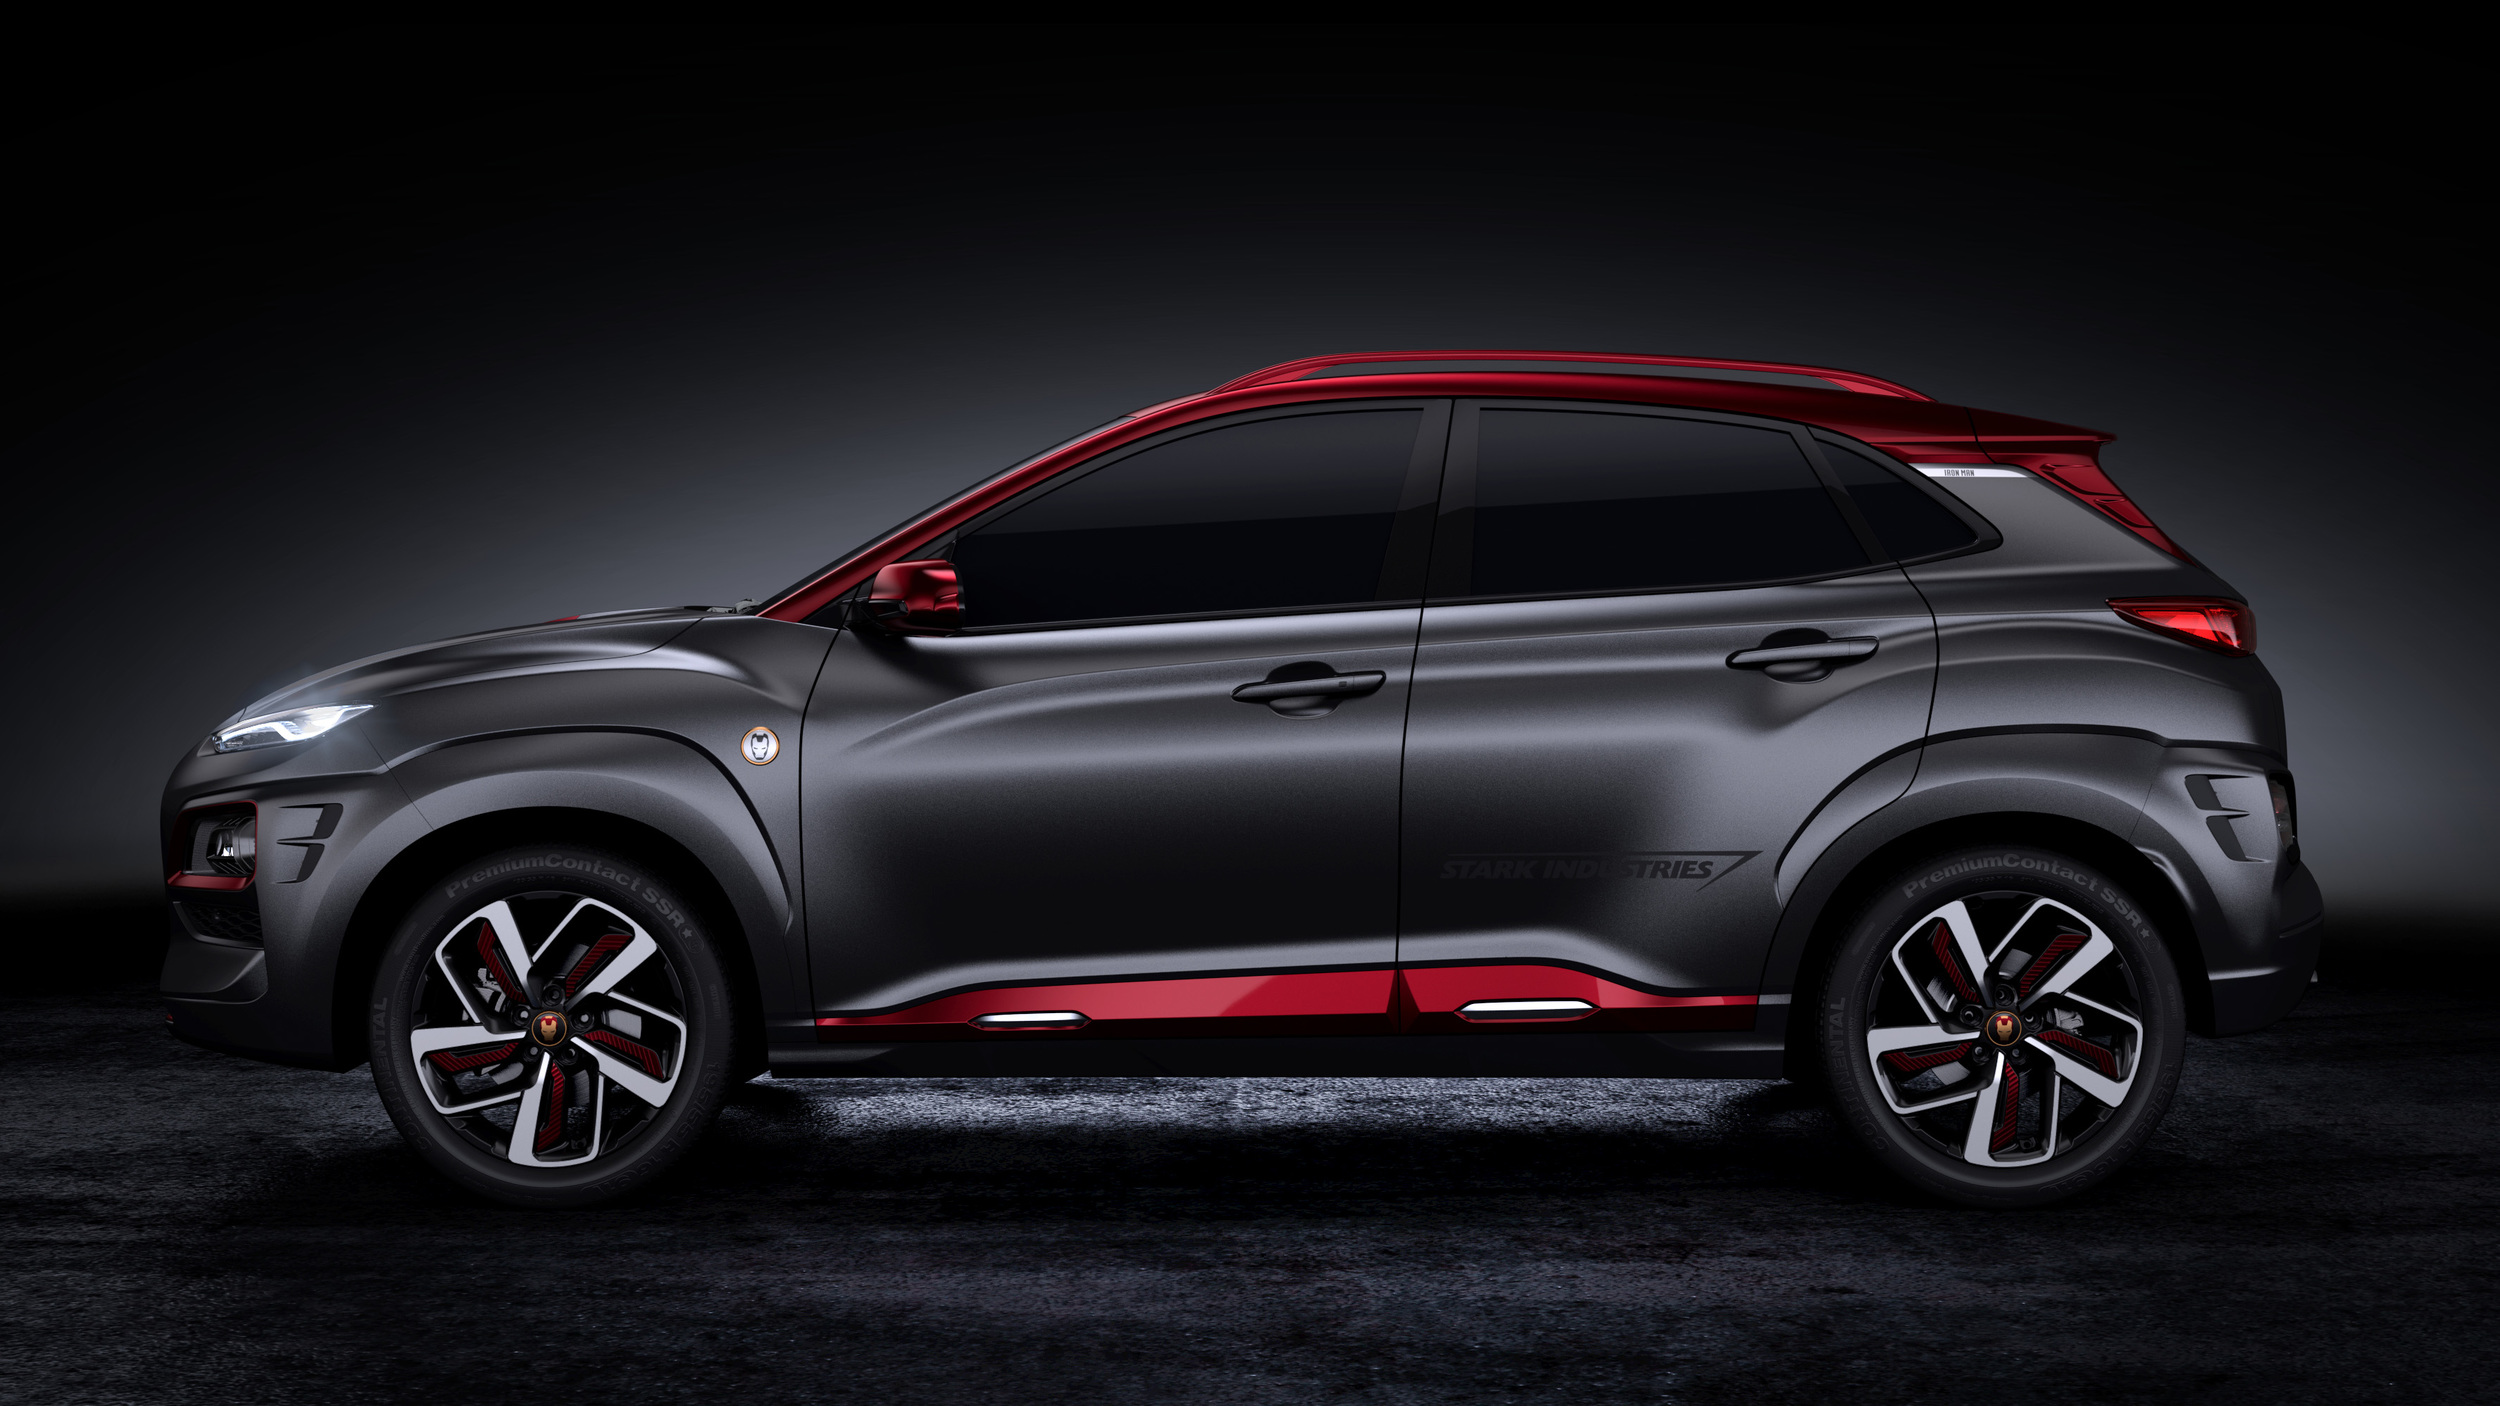 Hyundai Kona Iron Man Edition (4)